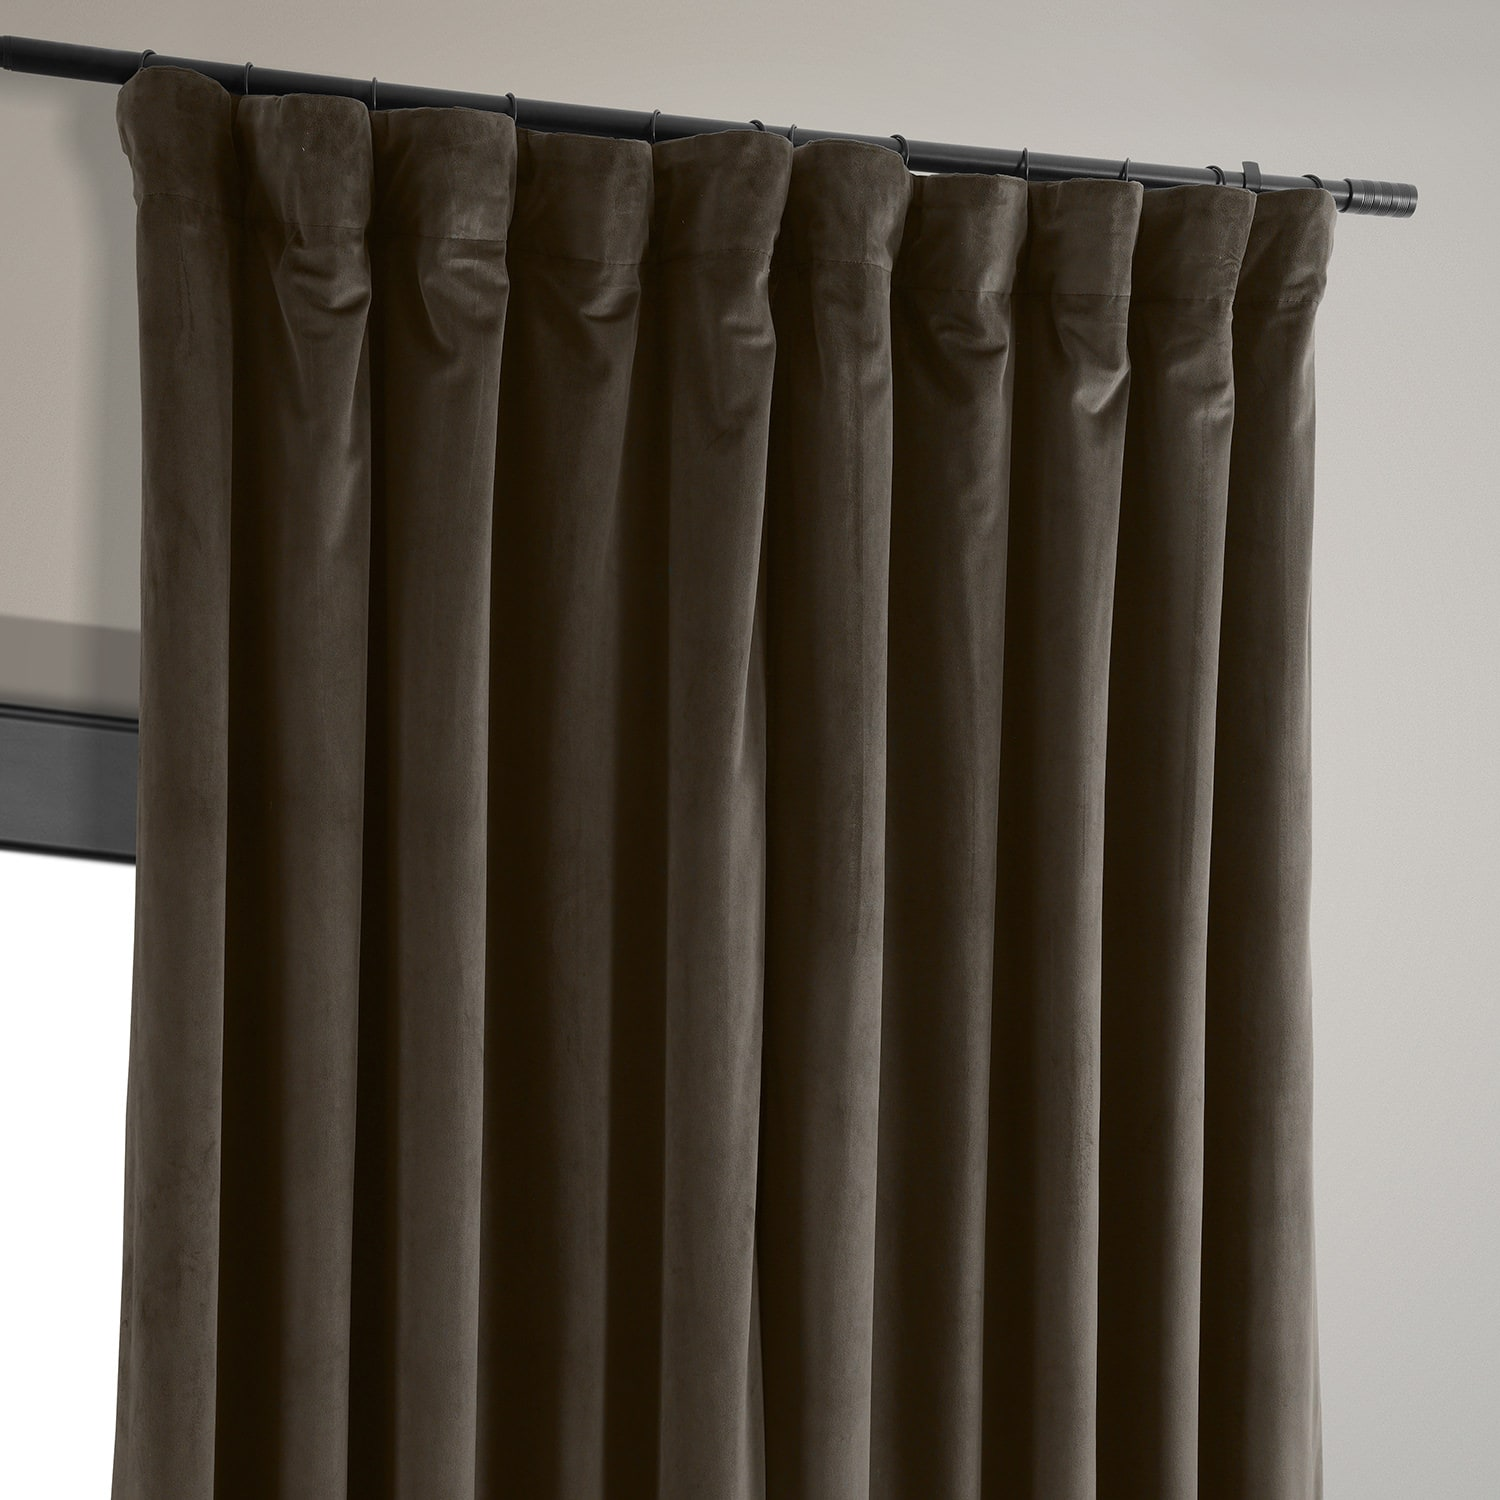 Signature Java Extra Wide Velvet Blackout Pole Pocket Curtain